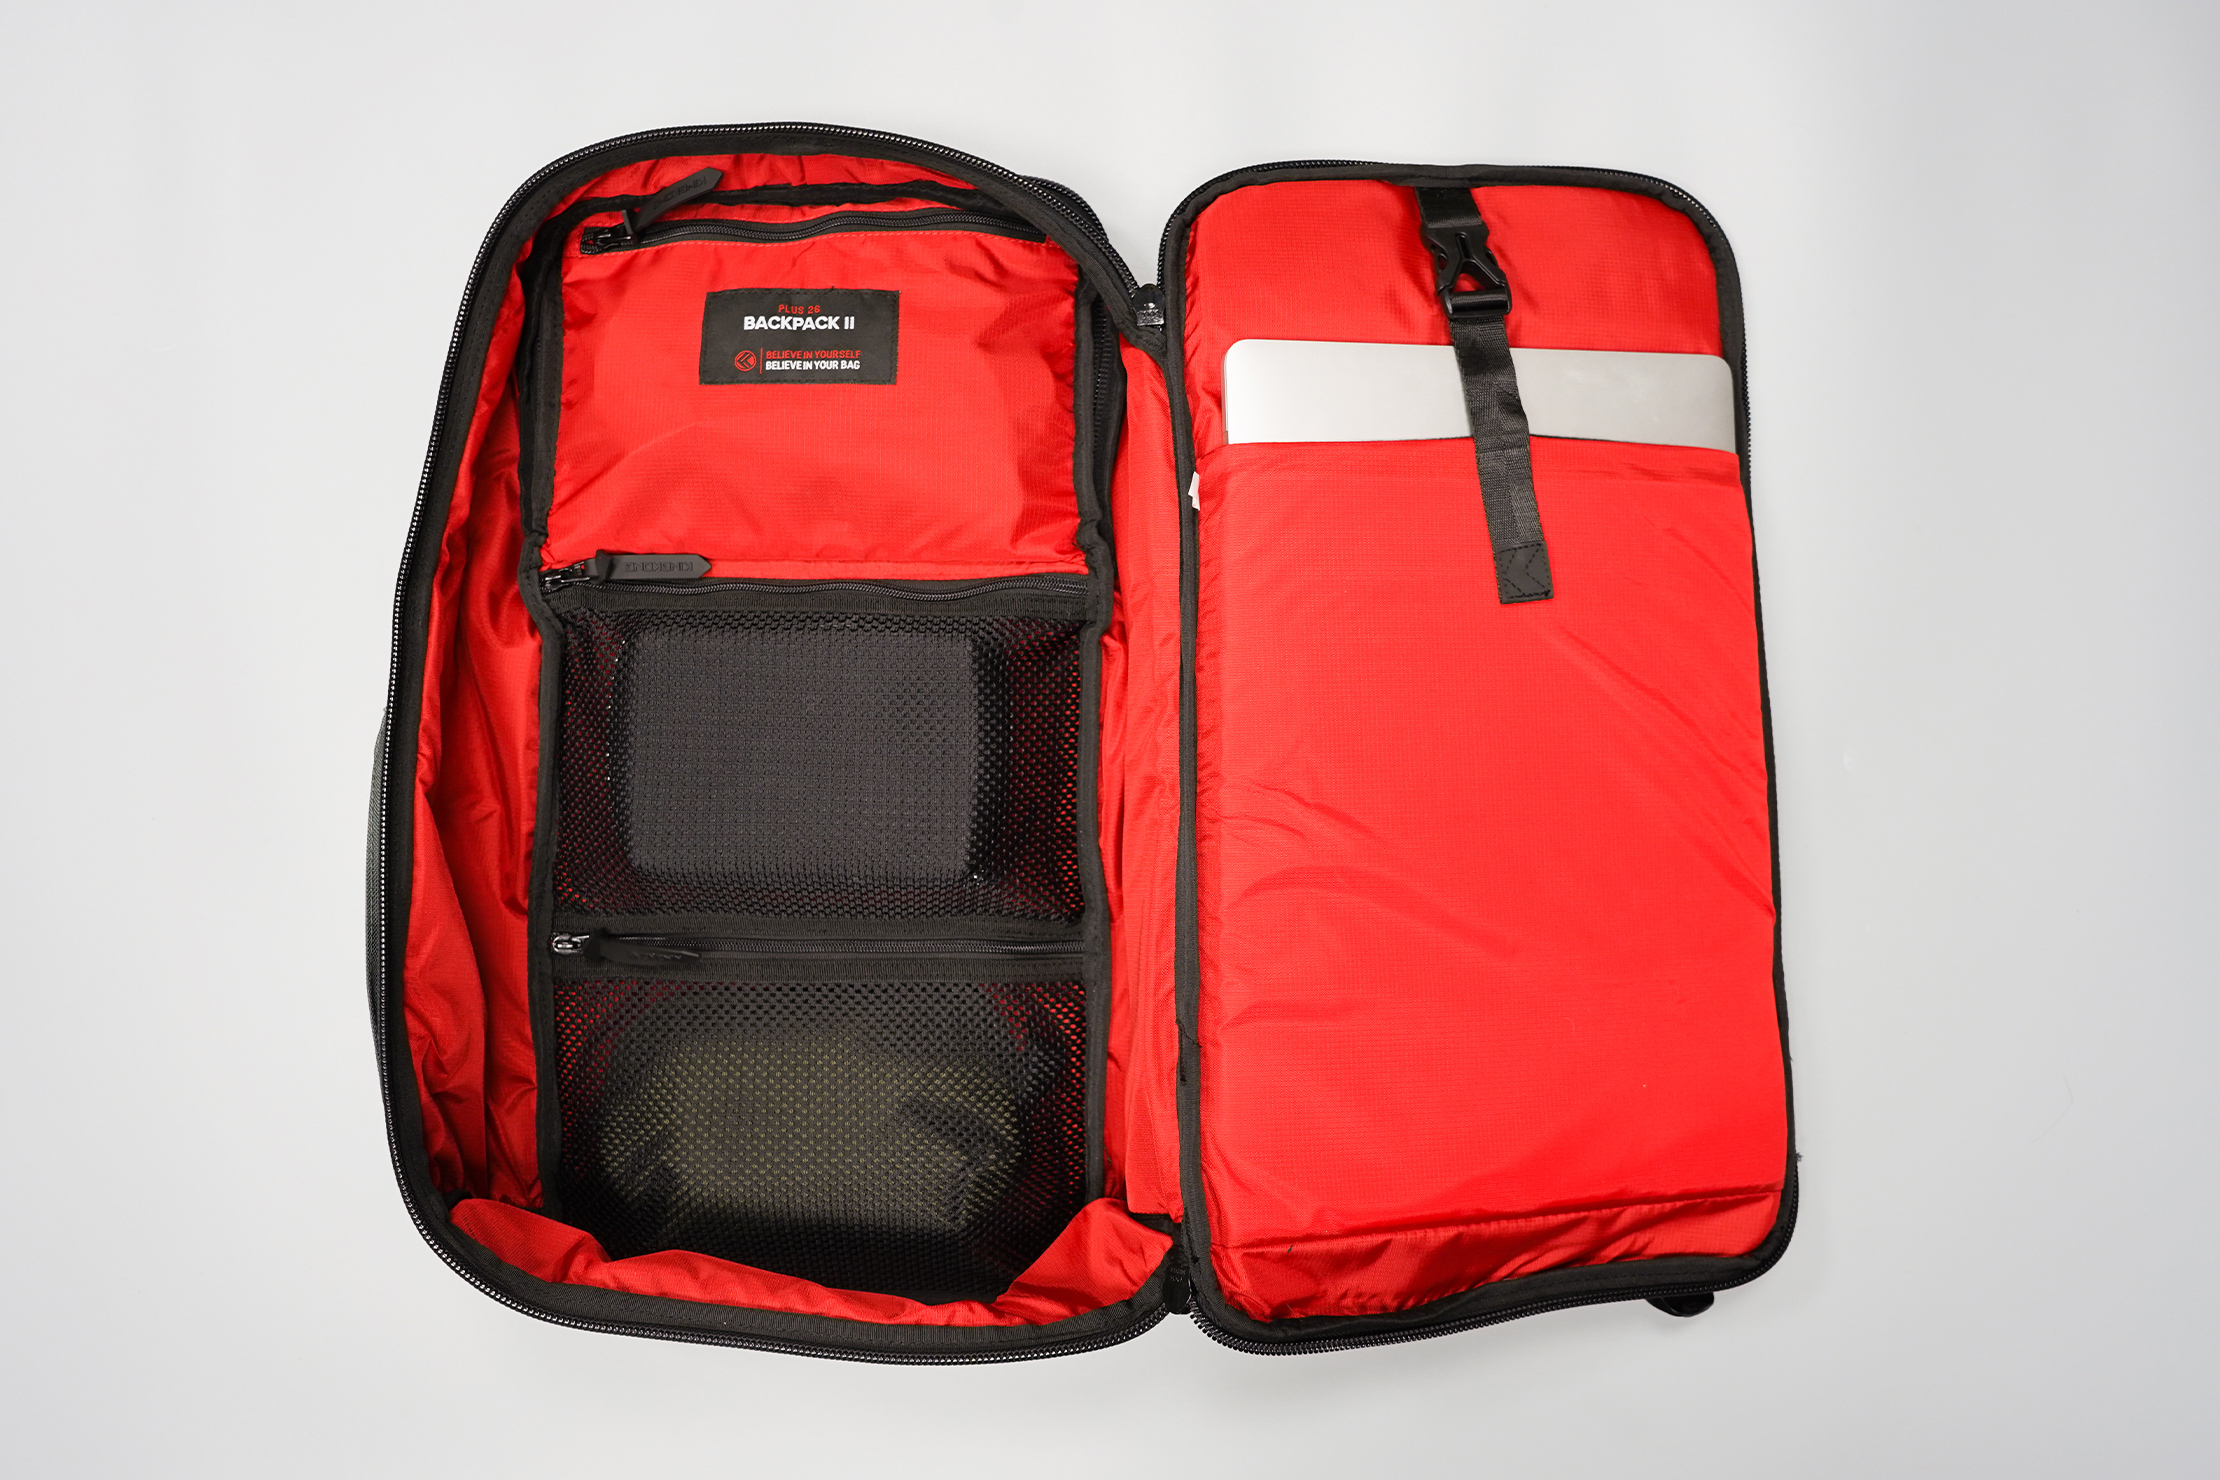 King Kong Apparel PLUS26 Backpack Main Compartment